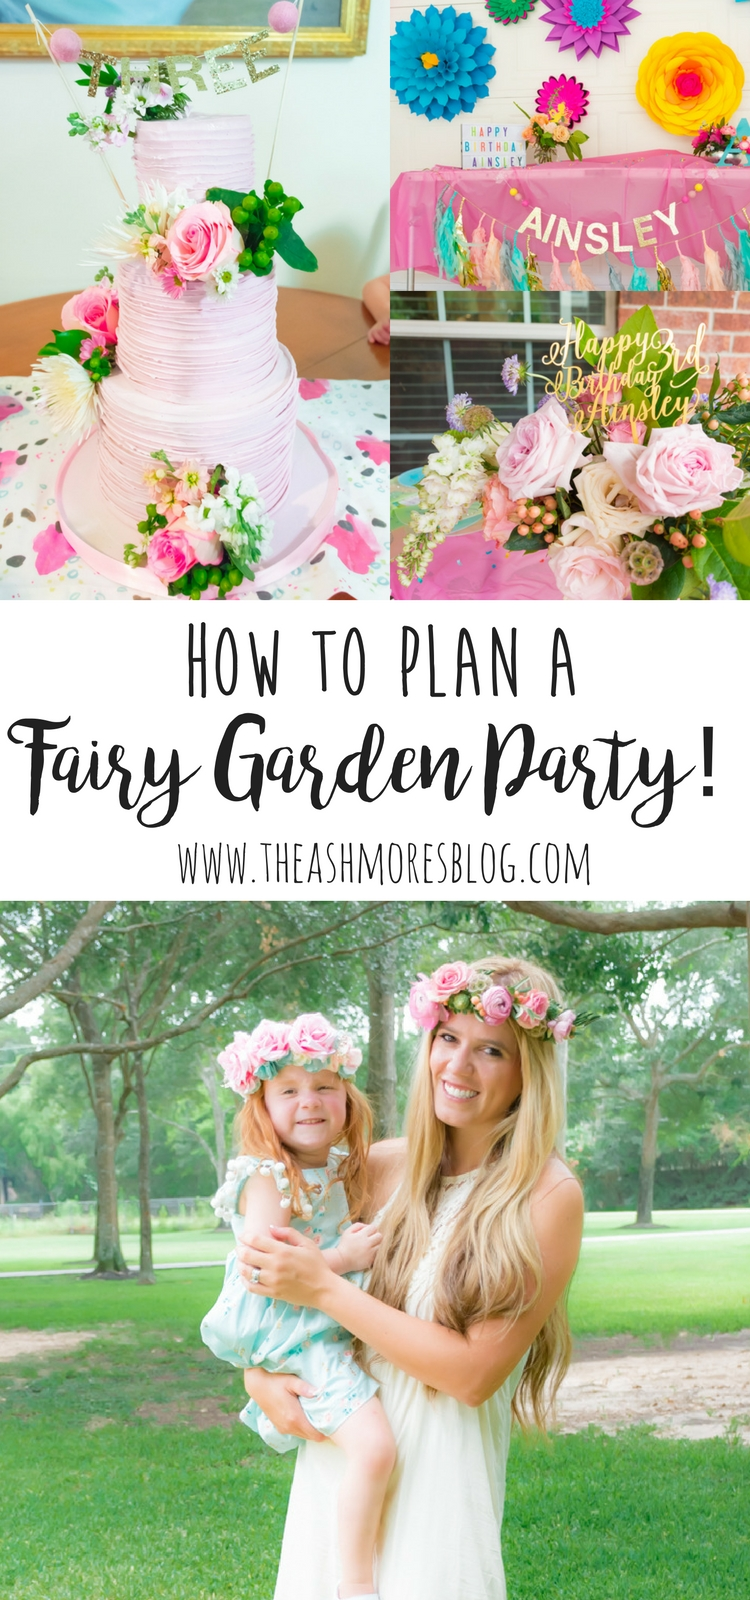 How to plan a Fairy Garden Party!